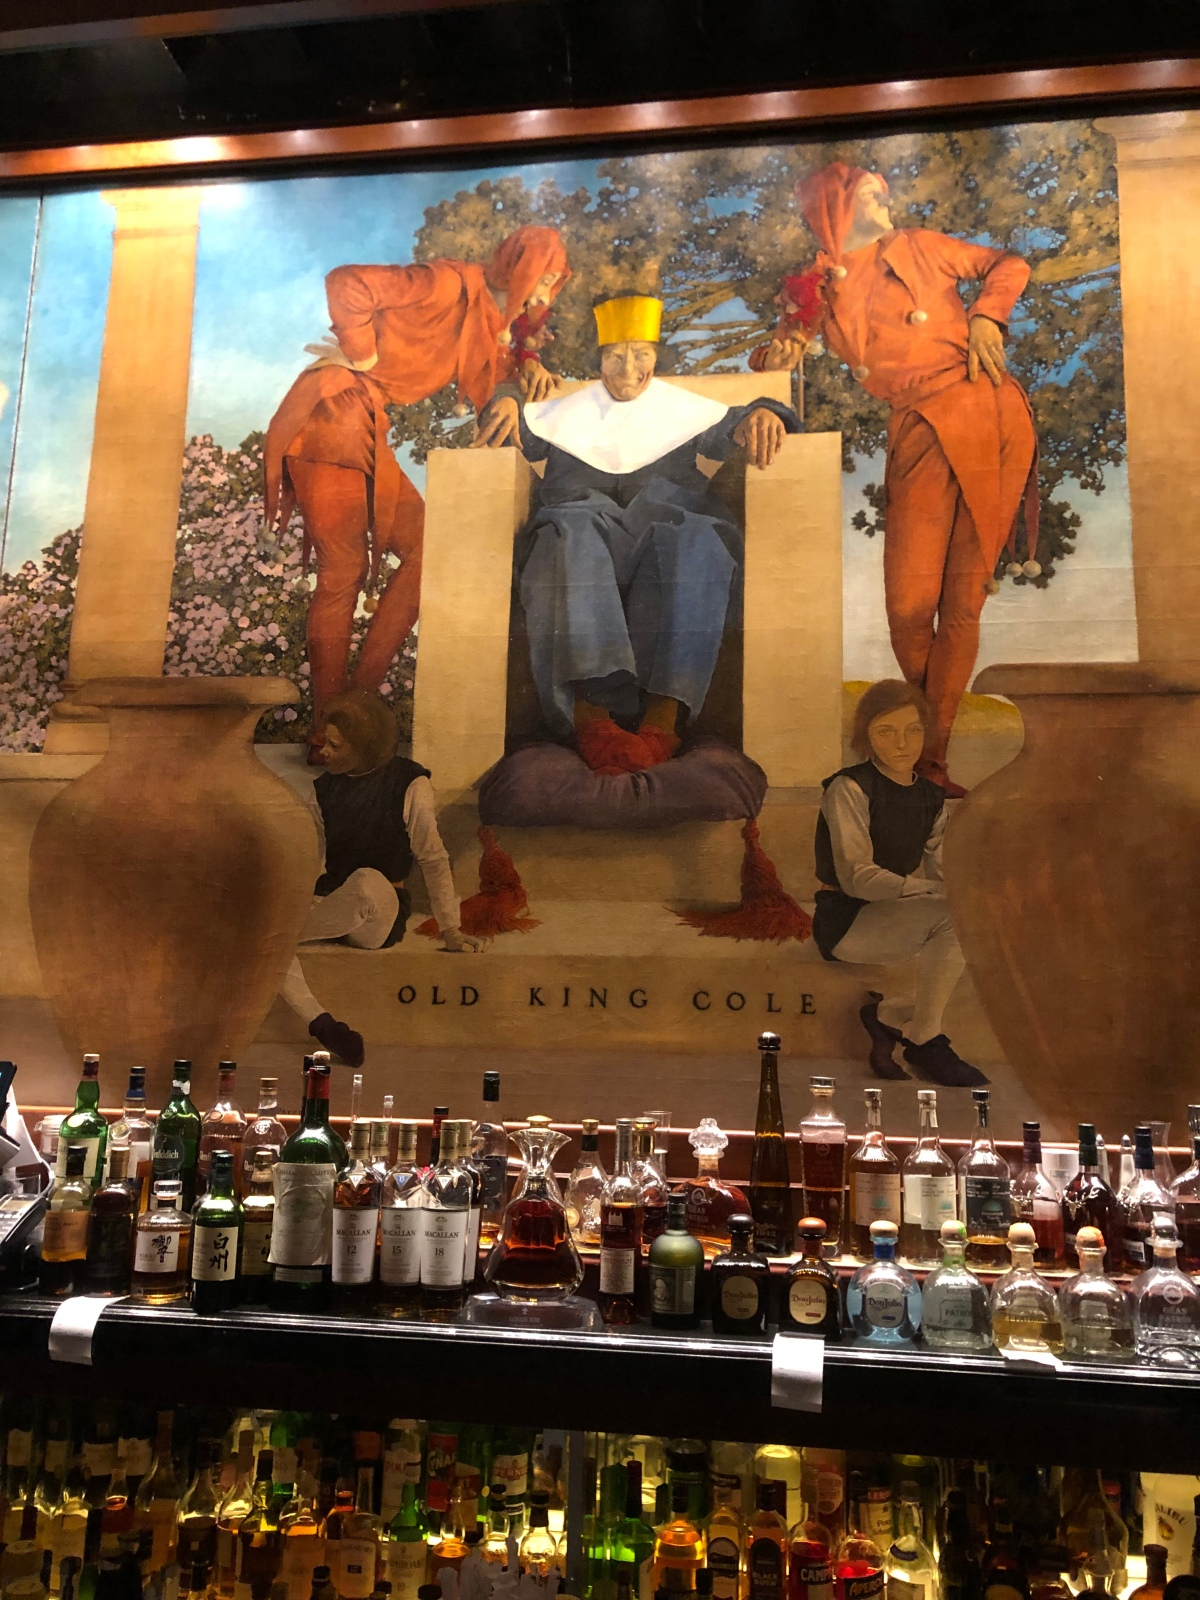 King Cole Bar at St. Regis New York